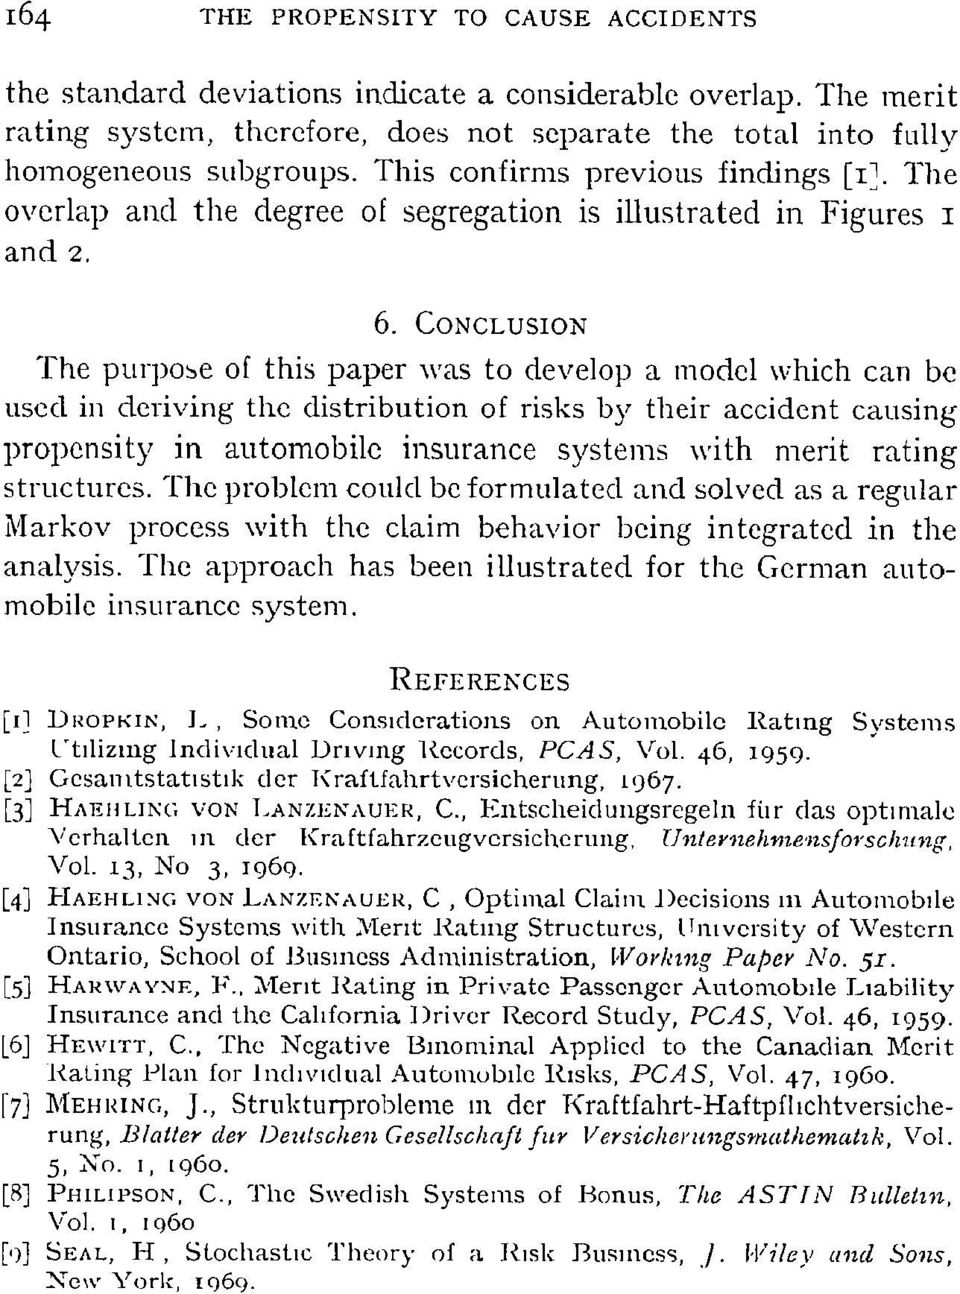 CONCLUSION The purpose of this paper was to develop a model which can be used in deriving the distribution of risks by their accident causing propensity in automobile insurance systems with merit